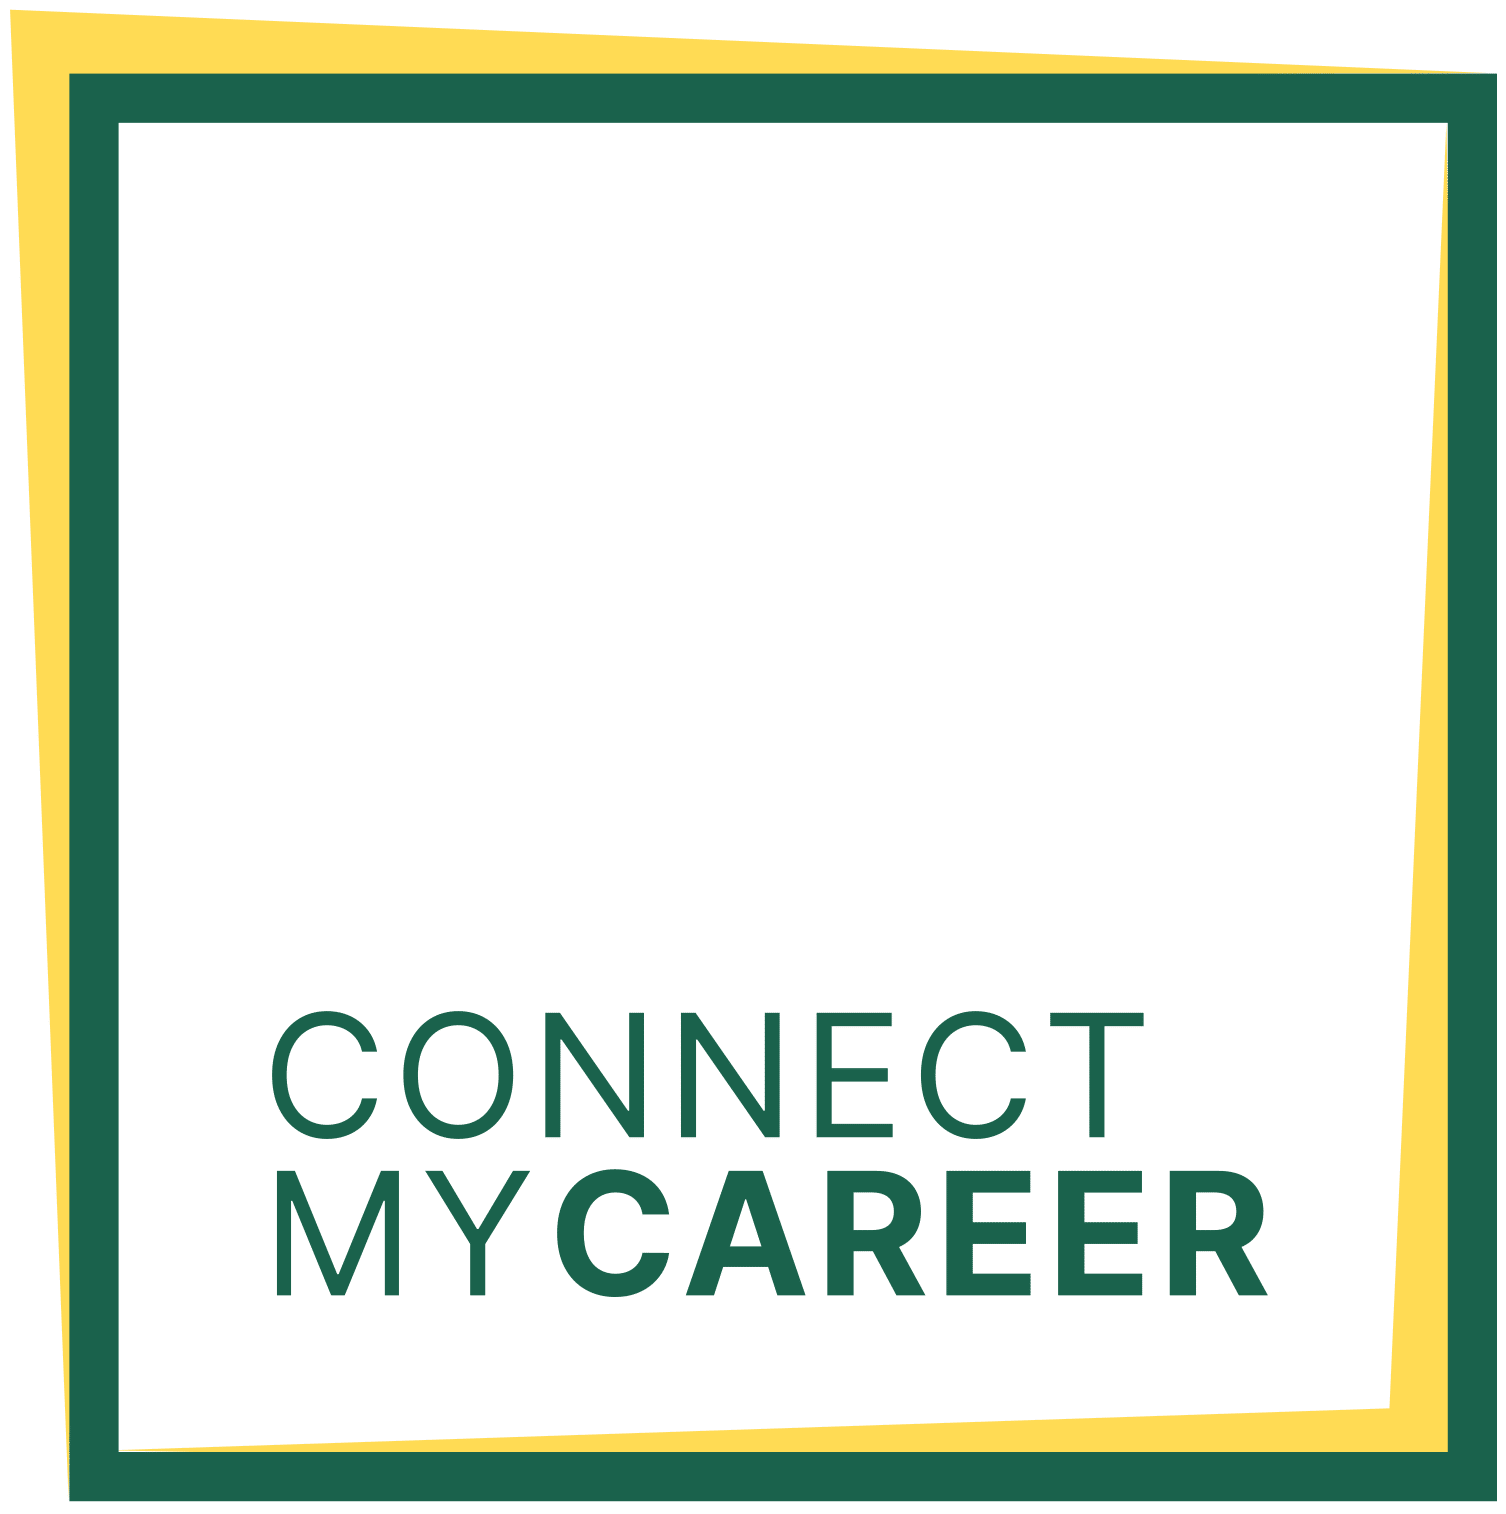 Connect My Career